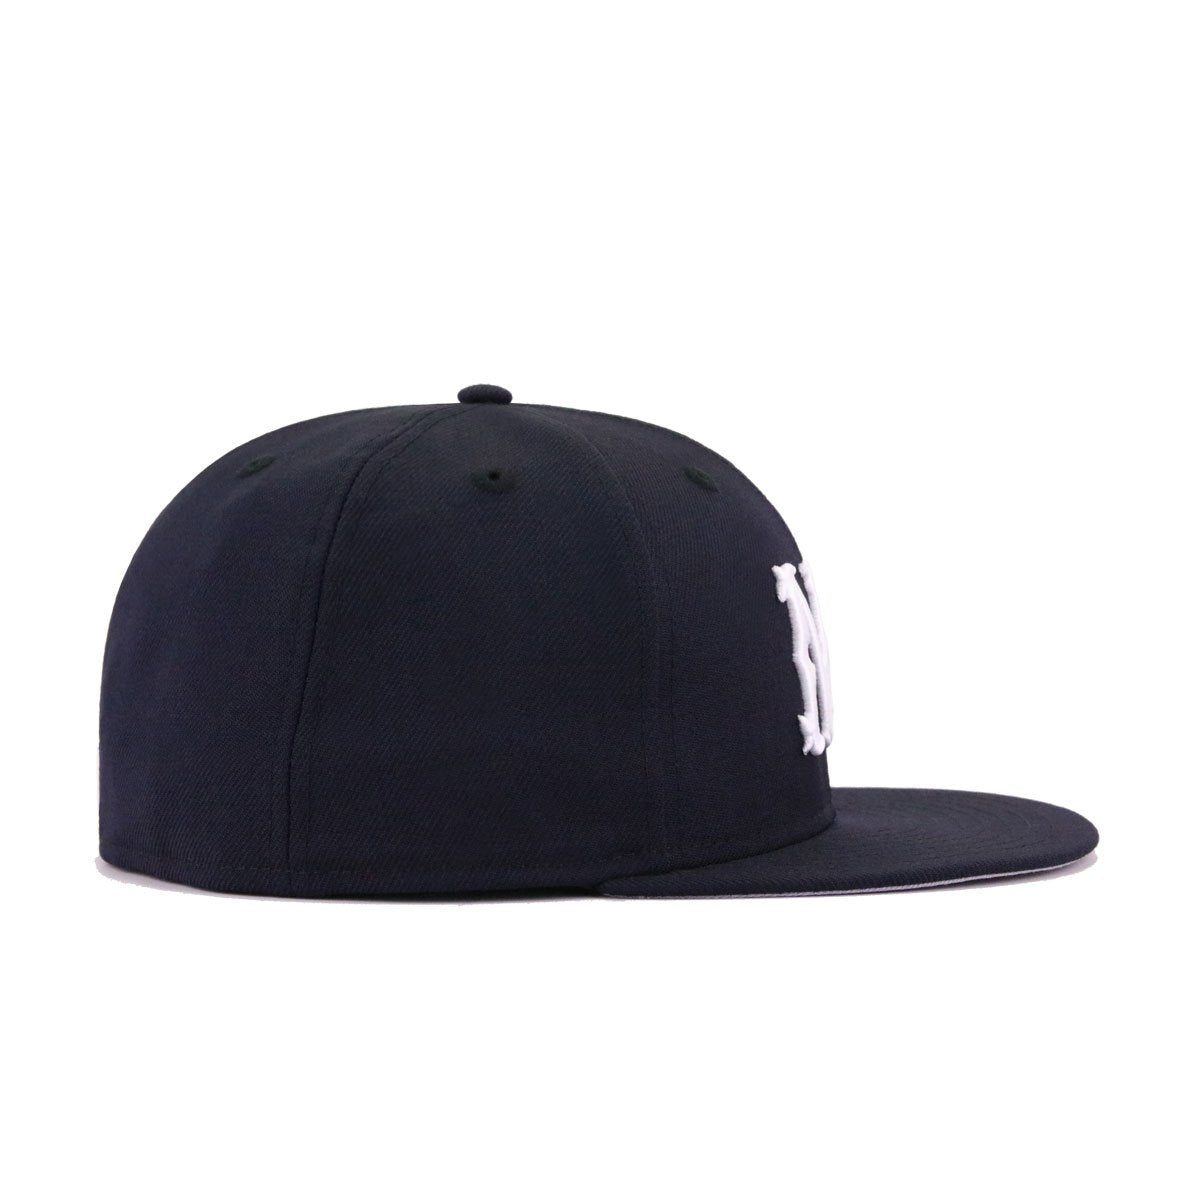 New York Yankees Navy 1903 Highlanders New Era 59Fifty Fitted